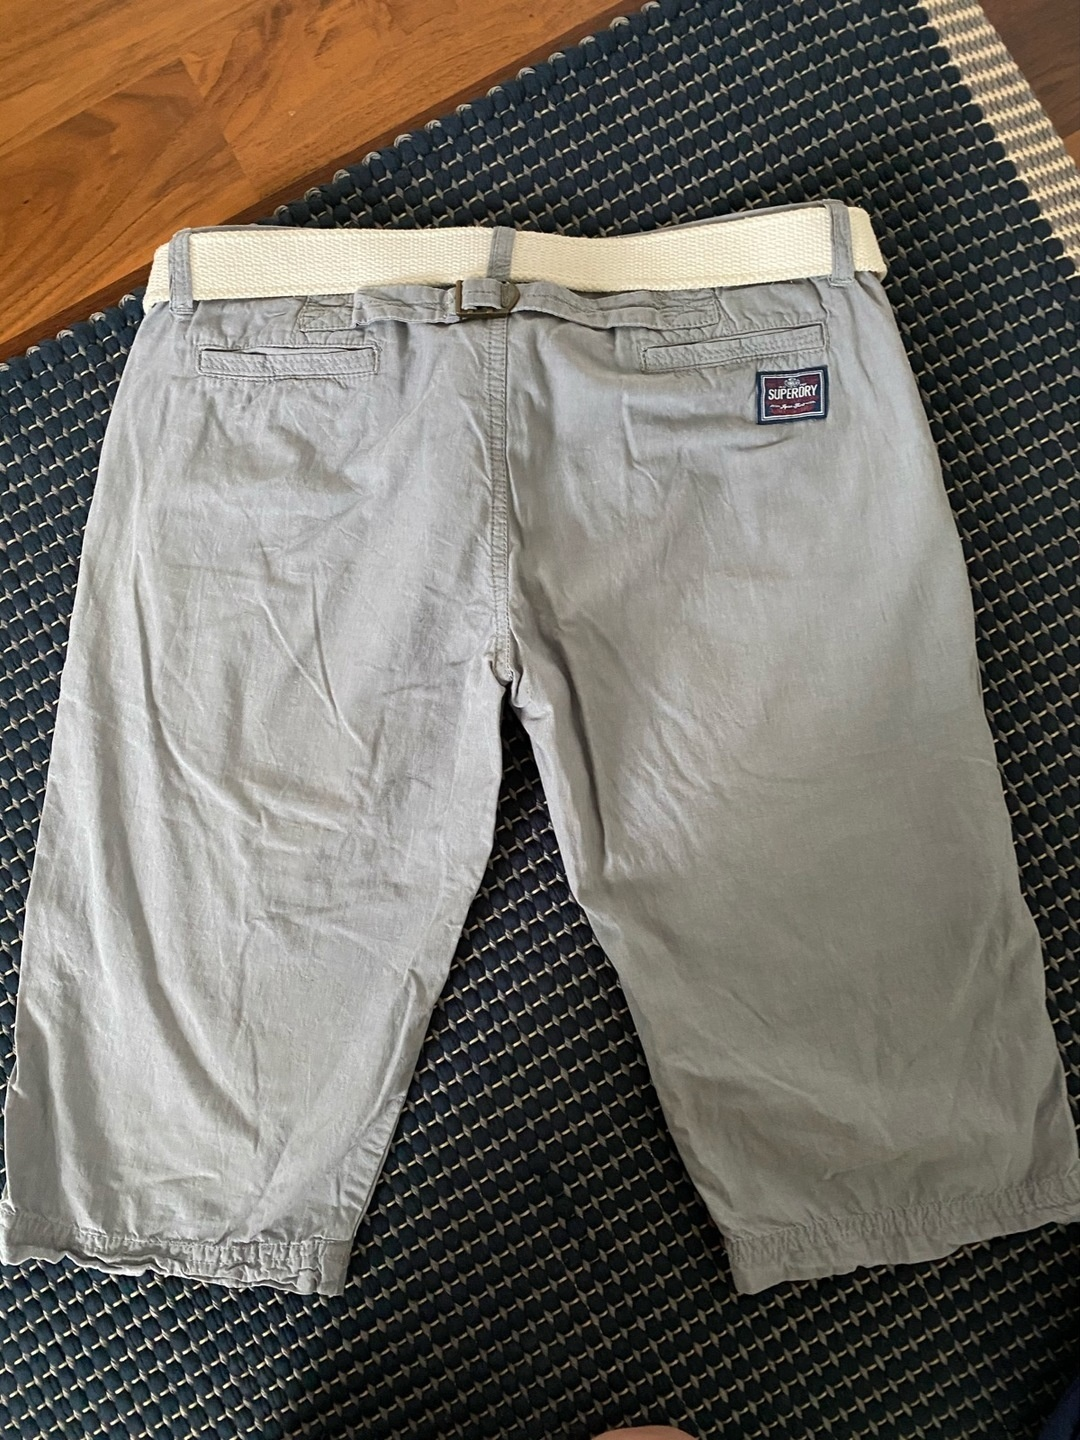 Damers shorts - SUPERDRY photo 2